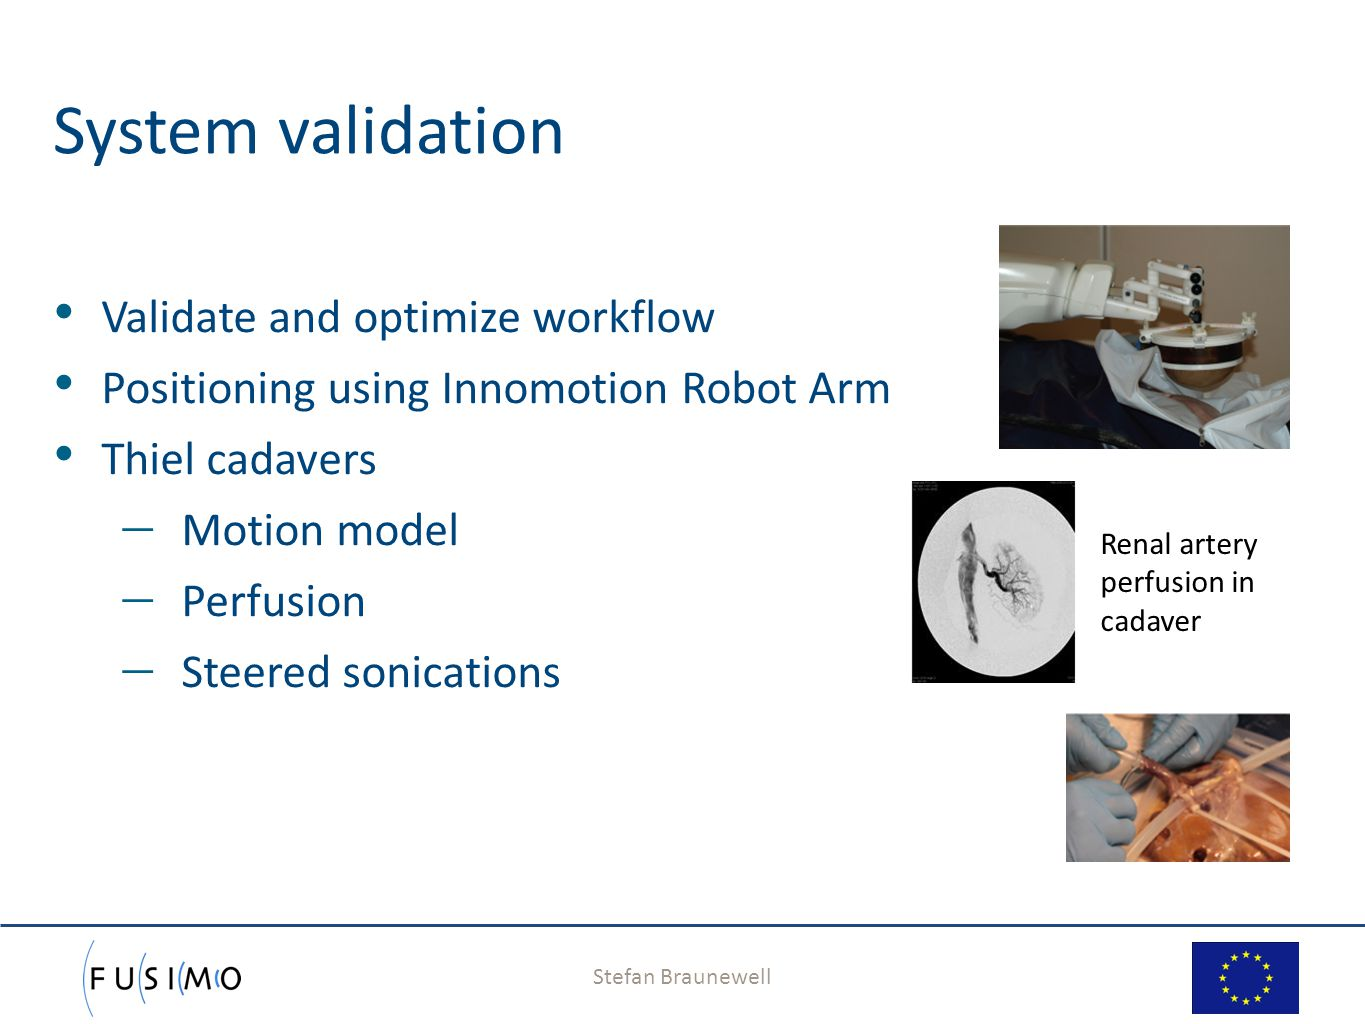 Stefan Braunewell 12 System validation Validate and optimize workflow Positioning using Innomotion Robot Arm Thiel cadavers  Motion model  Perfusion